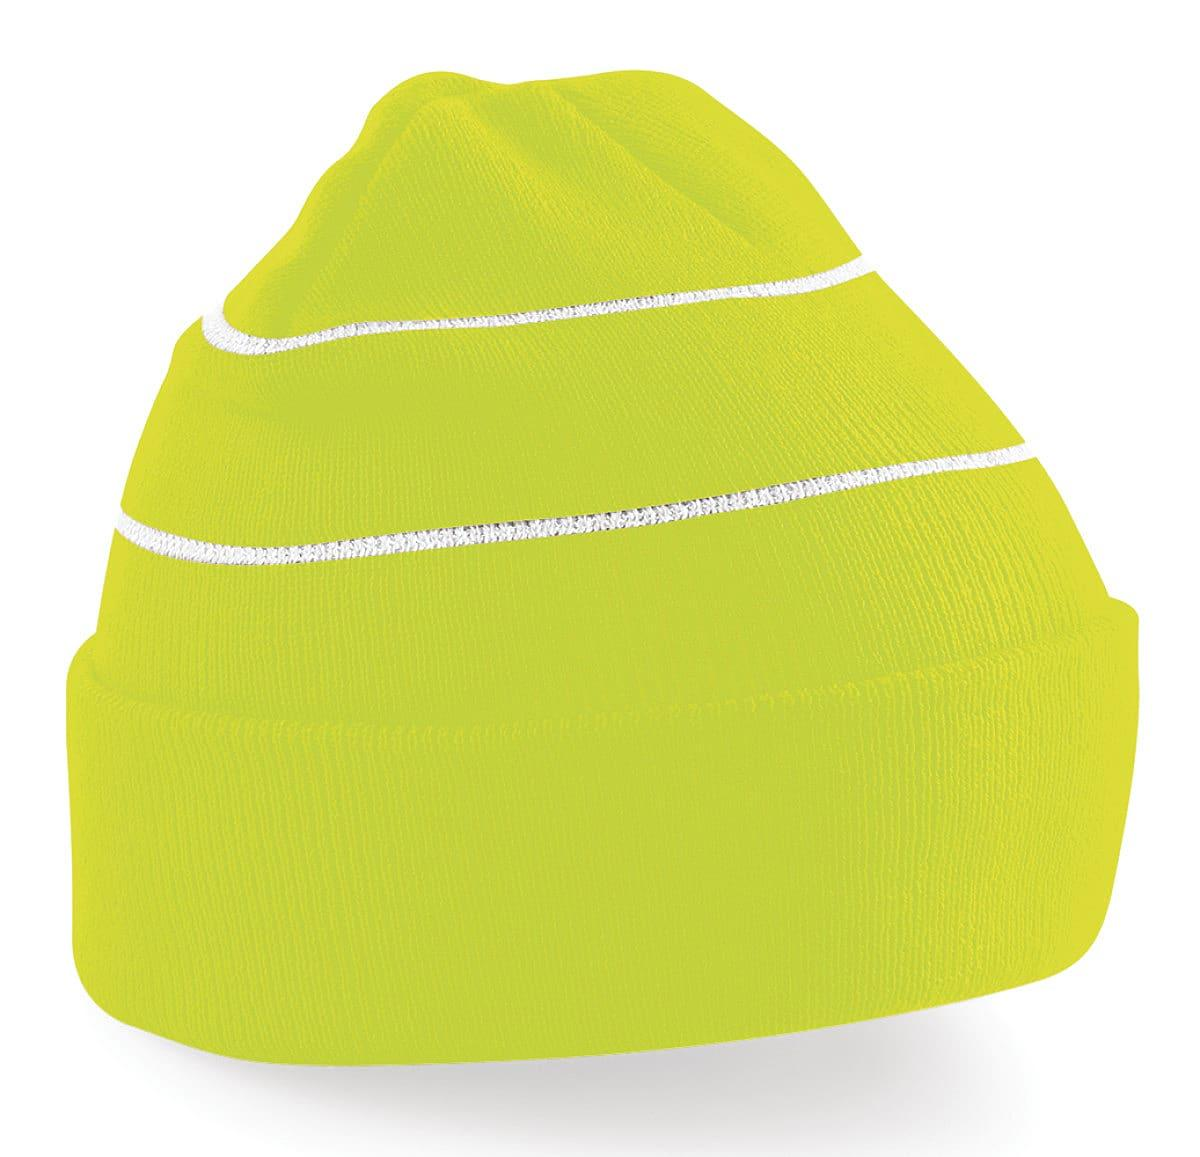 Beechfield Enhanced-Viz Knitted Hat in Fluorescent Yellow (Product Code: B42)